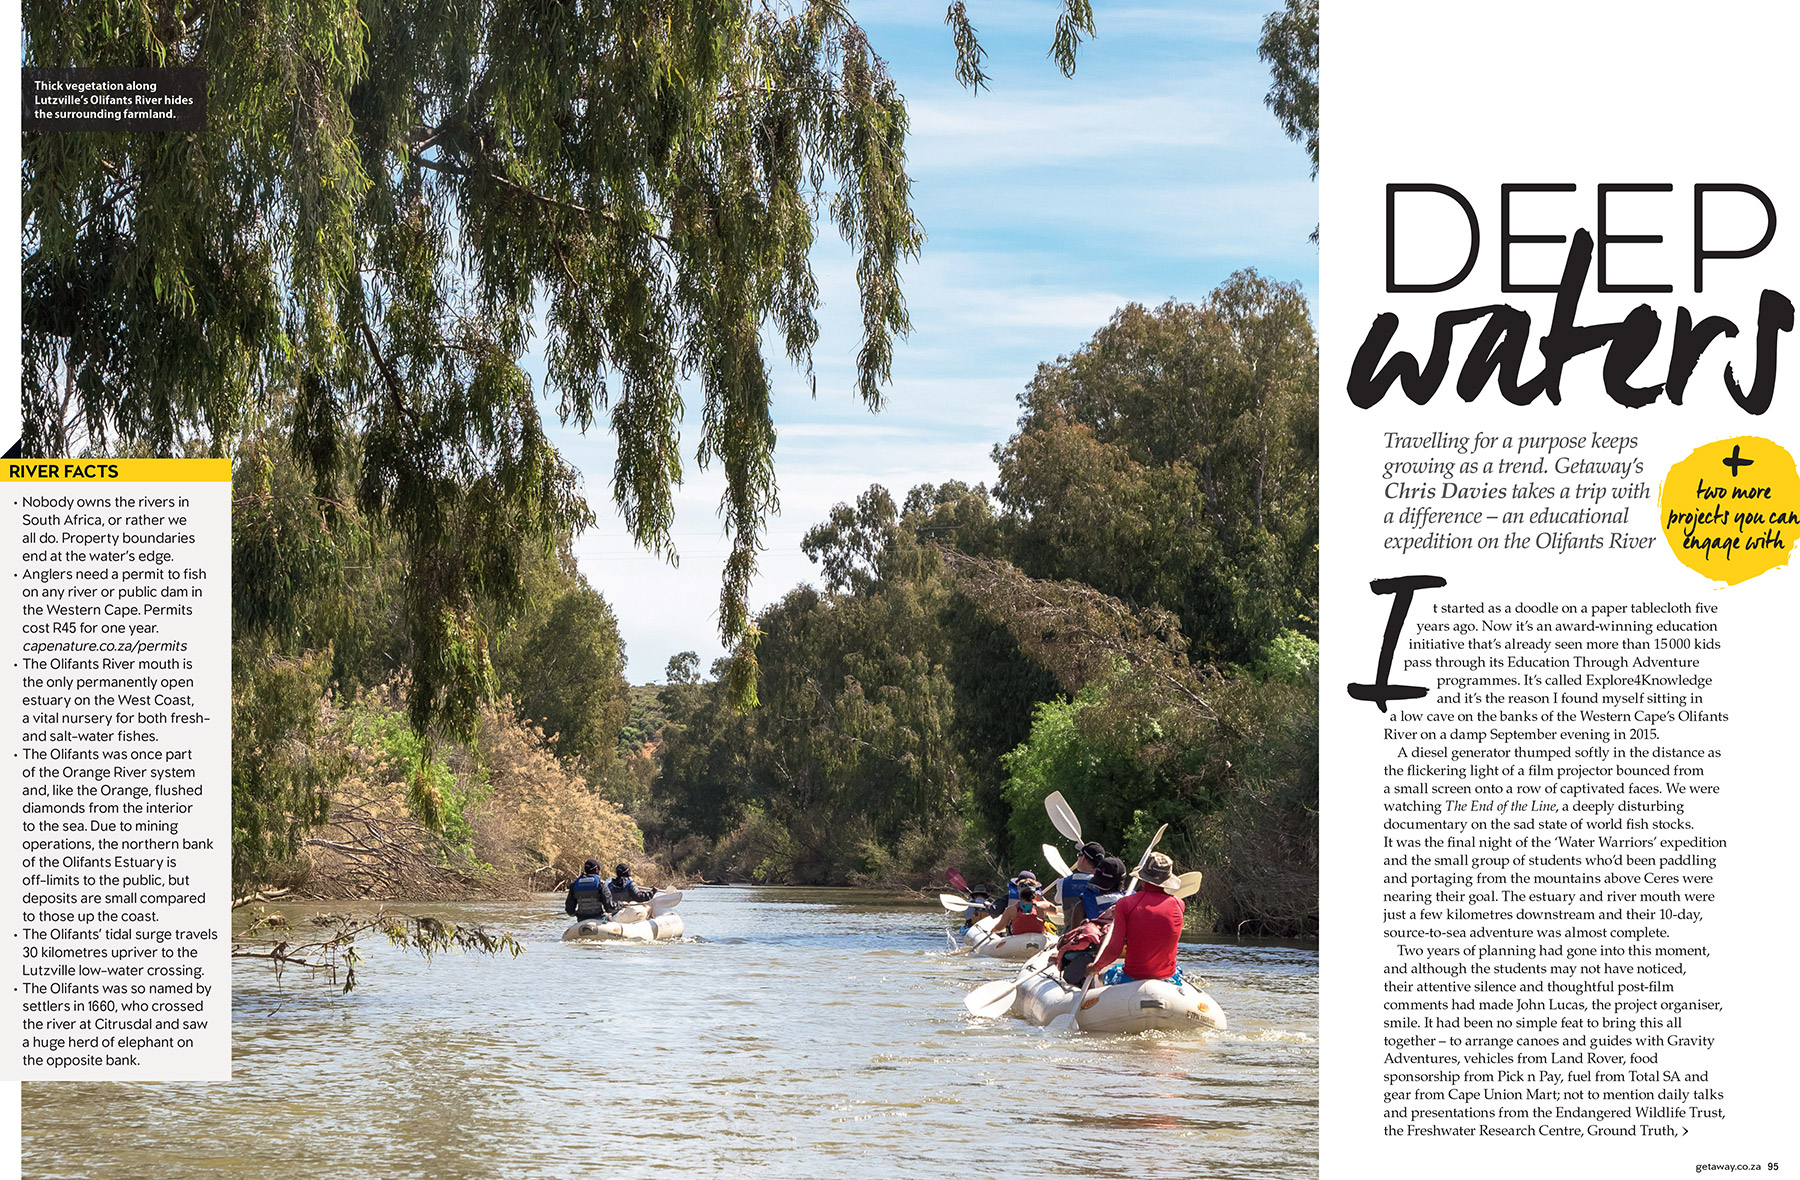 Getaway Magazine - Educational canoeing trip with Explore4Knowledge down the drought-stricken Olifants River in South Africa.